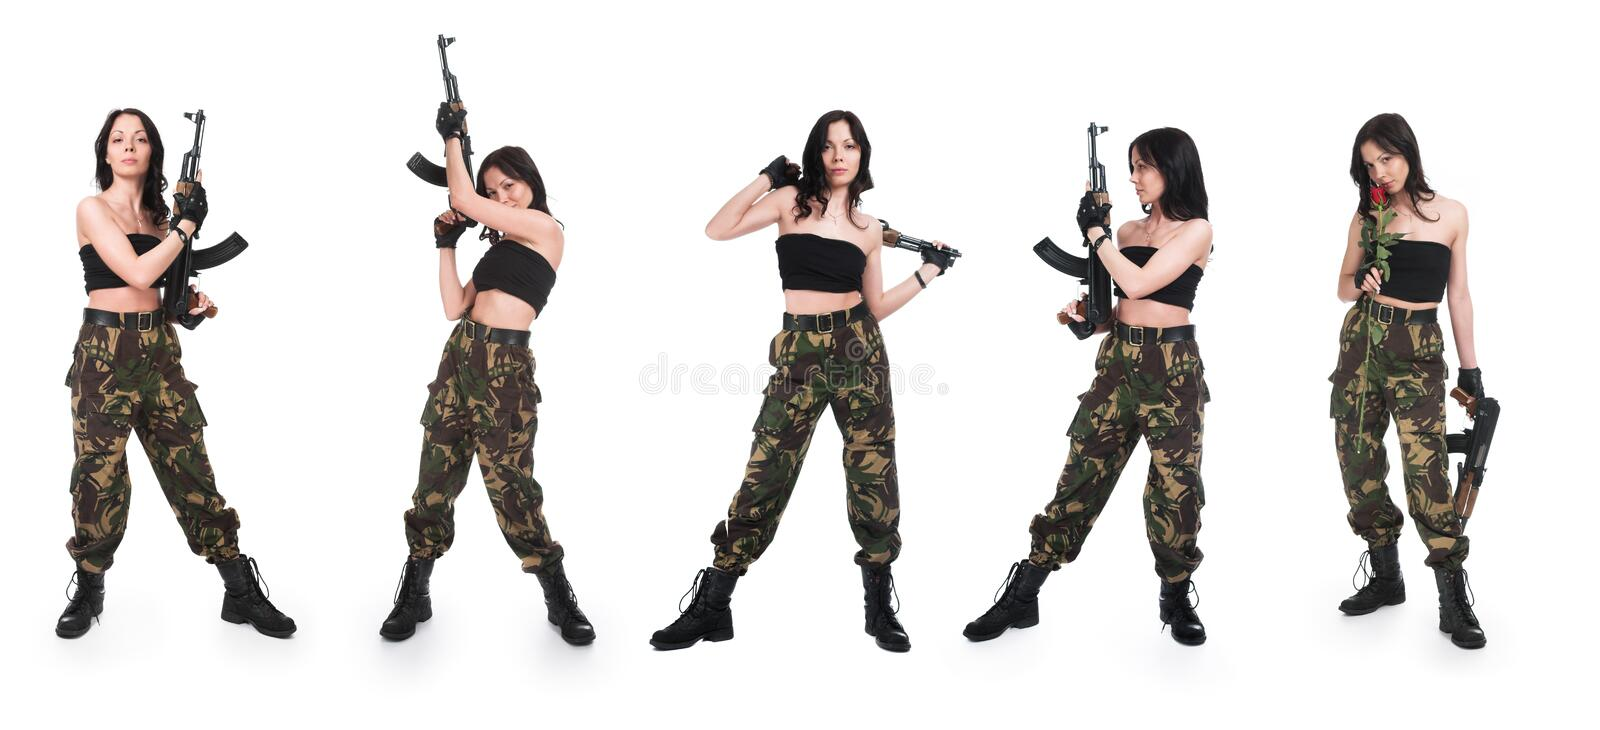 Download The girl with rifle AK stock photo. Image of background - 18234494